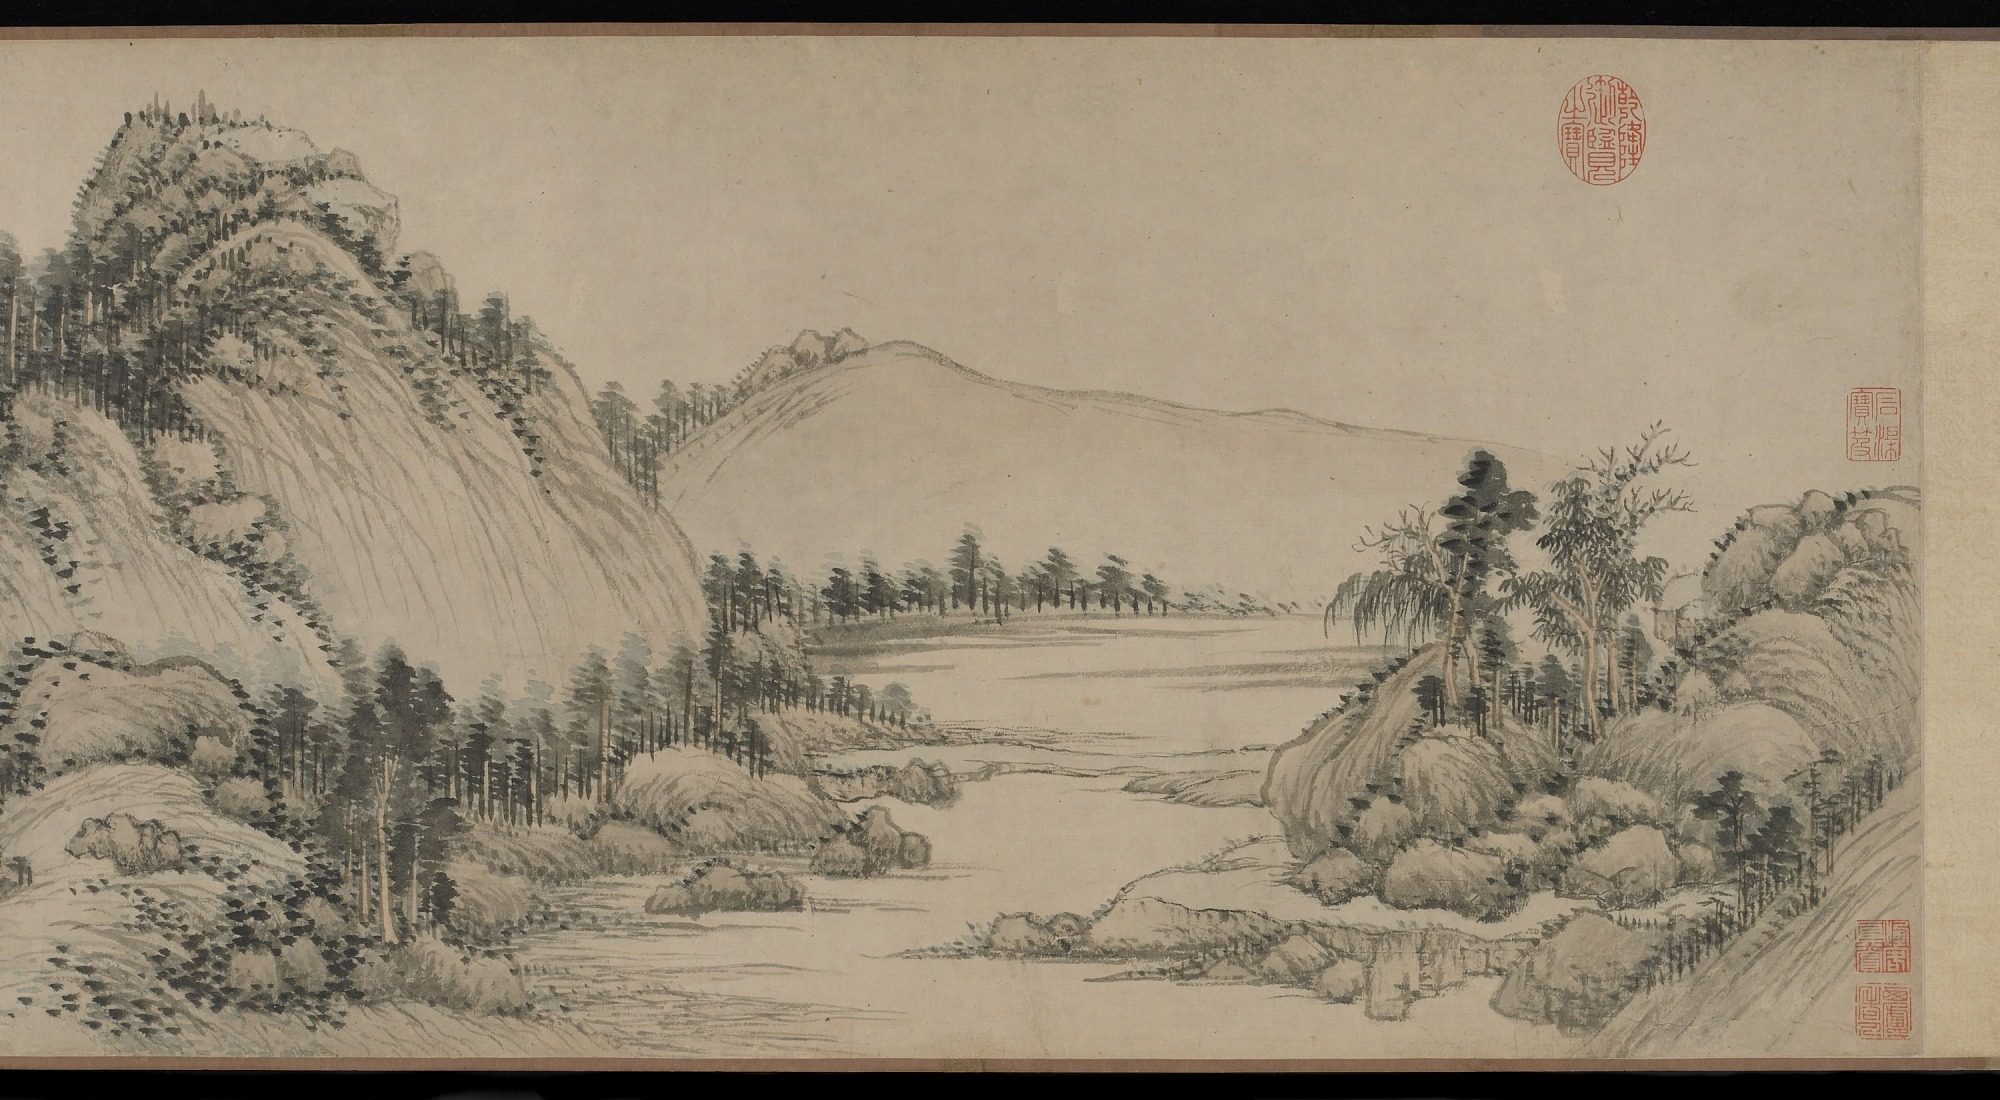 section 1: Dwelling in the Fuchun Mountains after Huang Gongwang